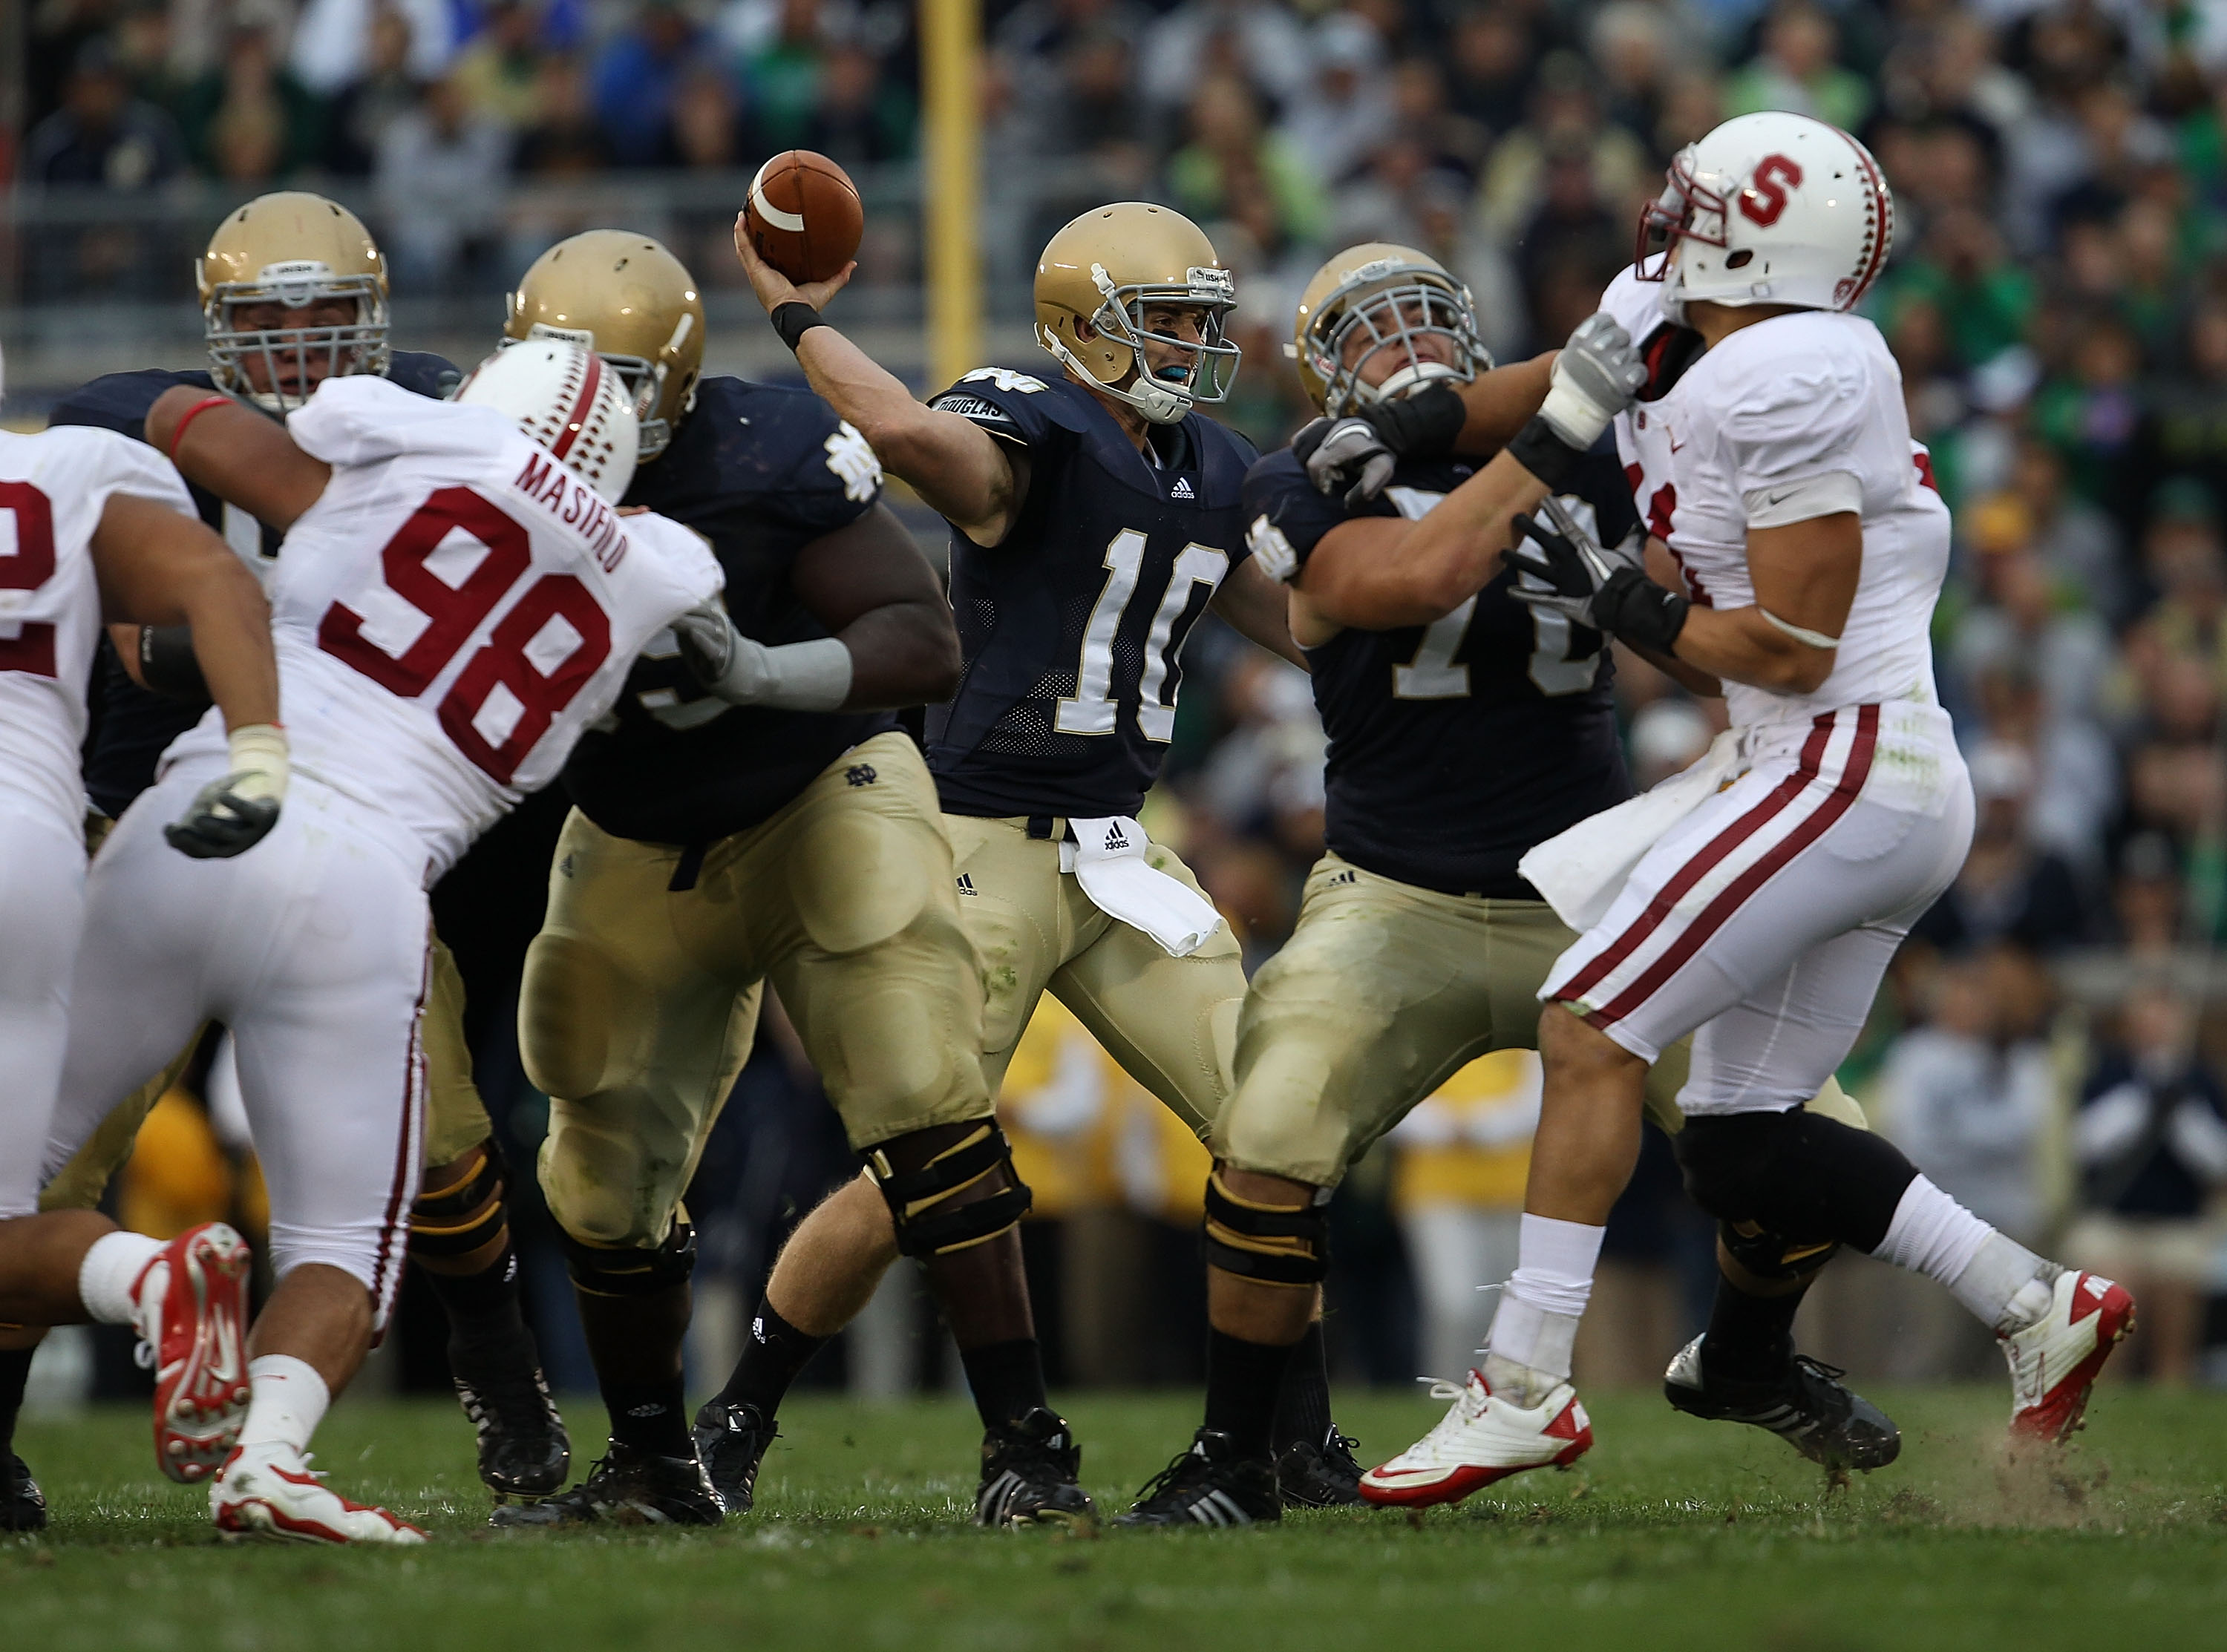 SOUTH BEND, IN - SEPTEMBER 25: Dayne Crist #10 of the Notre Dame Fighting Irish passes the ball against the Stanford Cardinal at Notre Dame Stadium on September 25, 2010 in South Bend, Indiana. Stanford defated Notre Dame 37-14. (Photo by Jonathan Daniel/